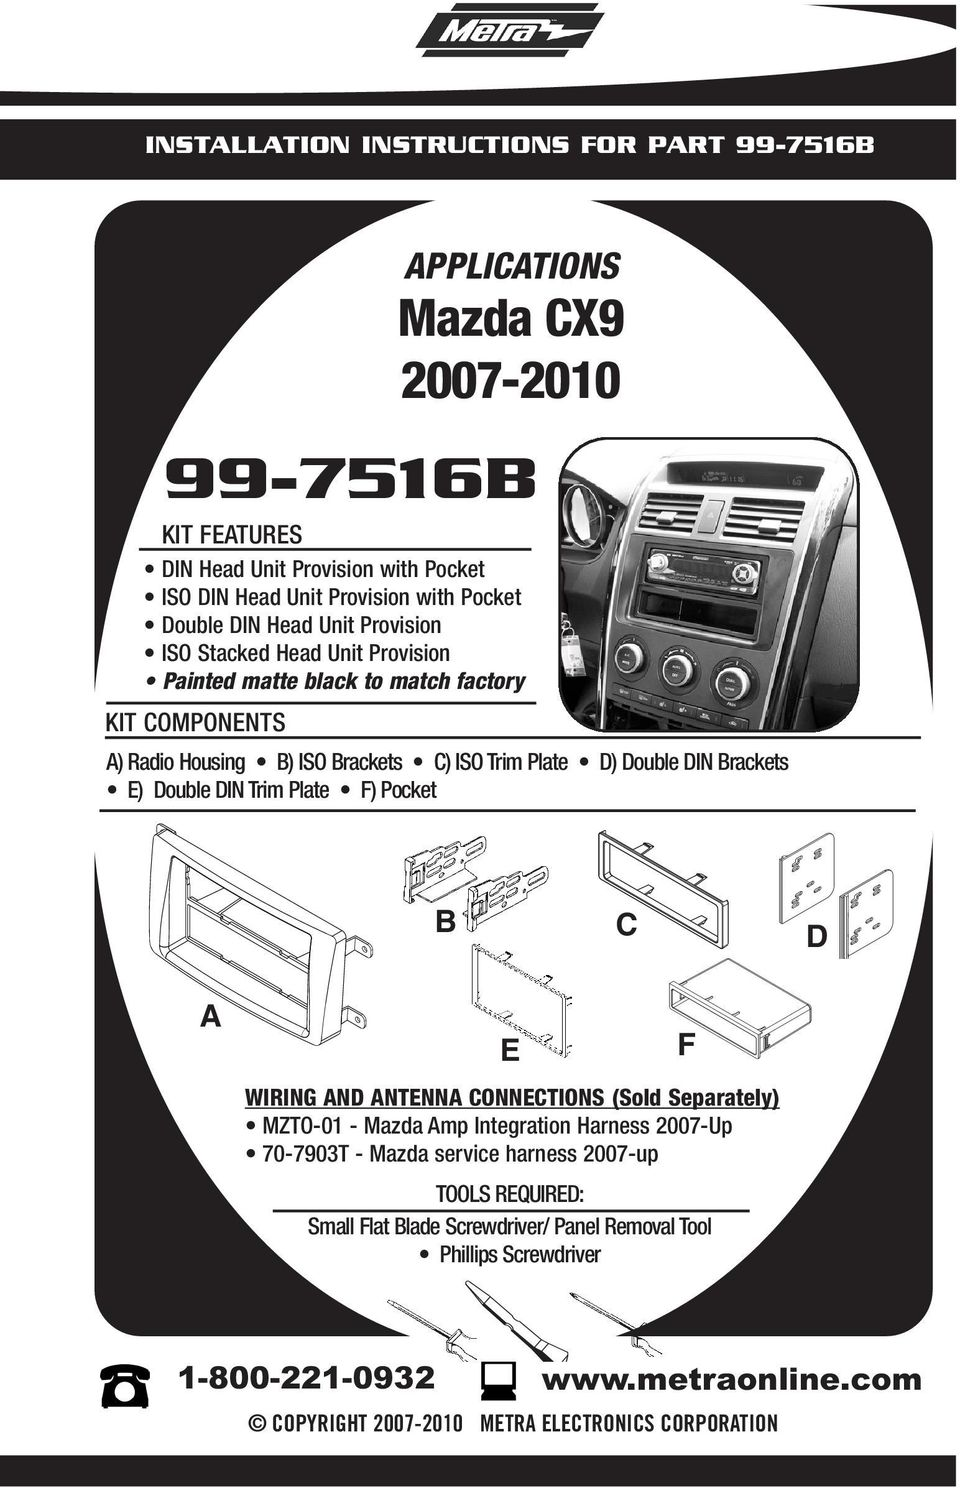 Installation Instructions For Part B Applications Mazda Cx Pdf Wiring Housing Rackets E Double Din Trim Plate F Pocket D Nd Ntenn Onnetions